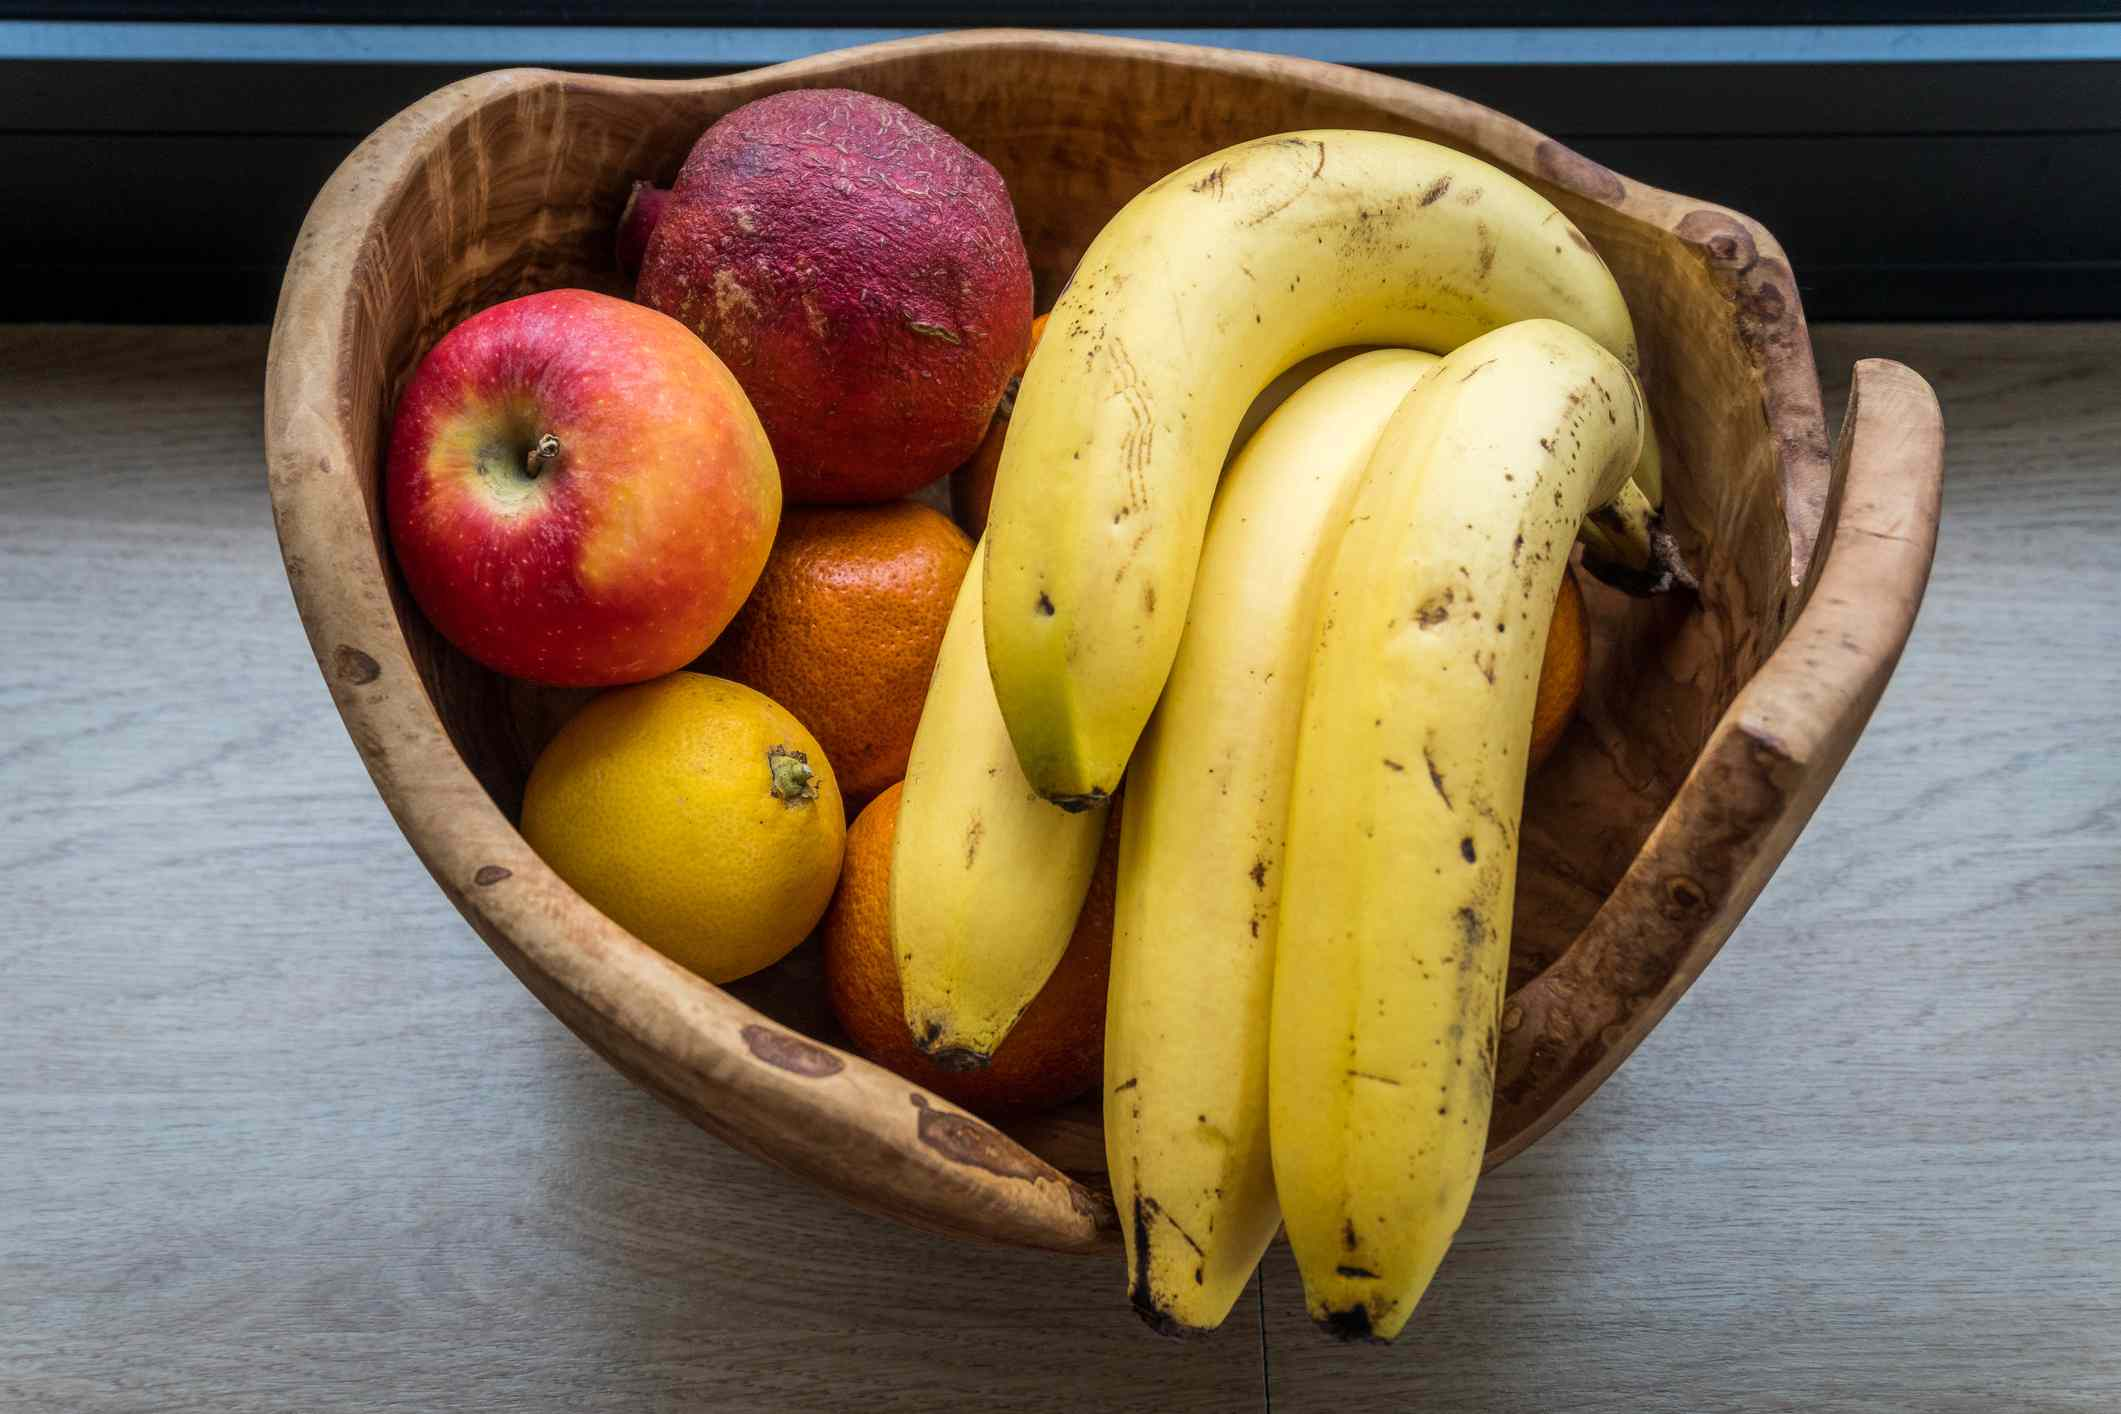 A fruit bowl with apples and bananas